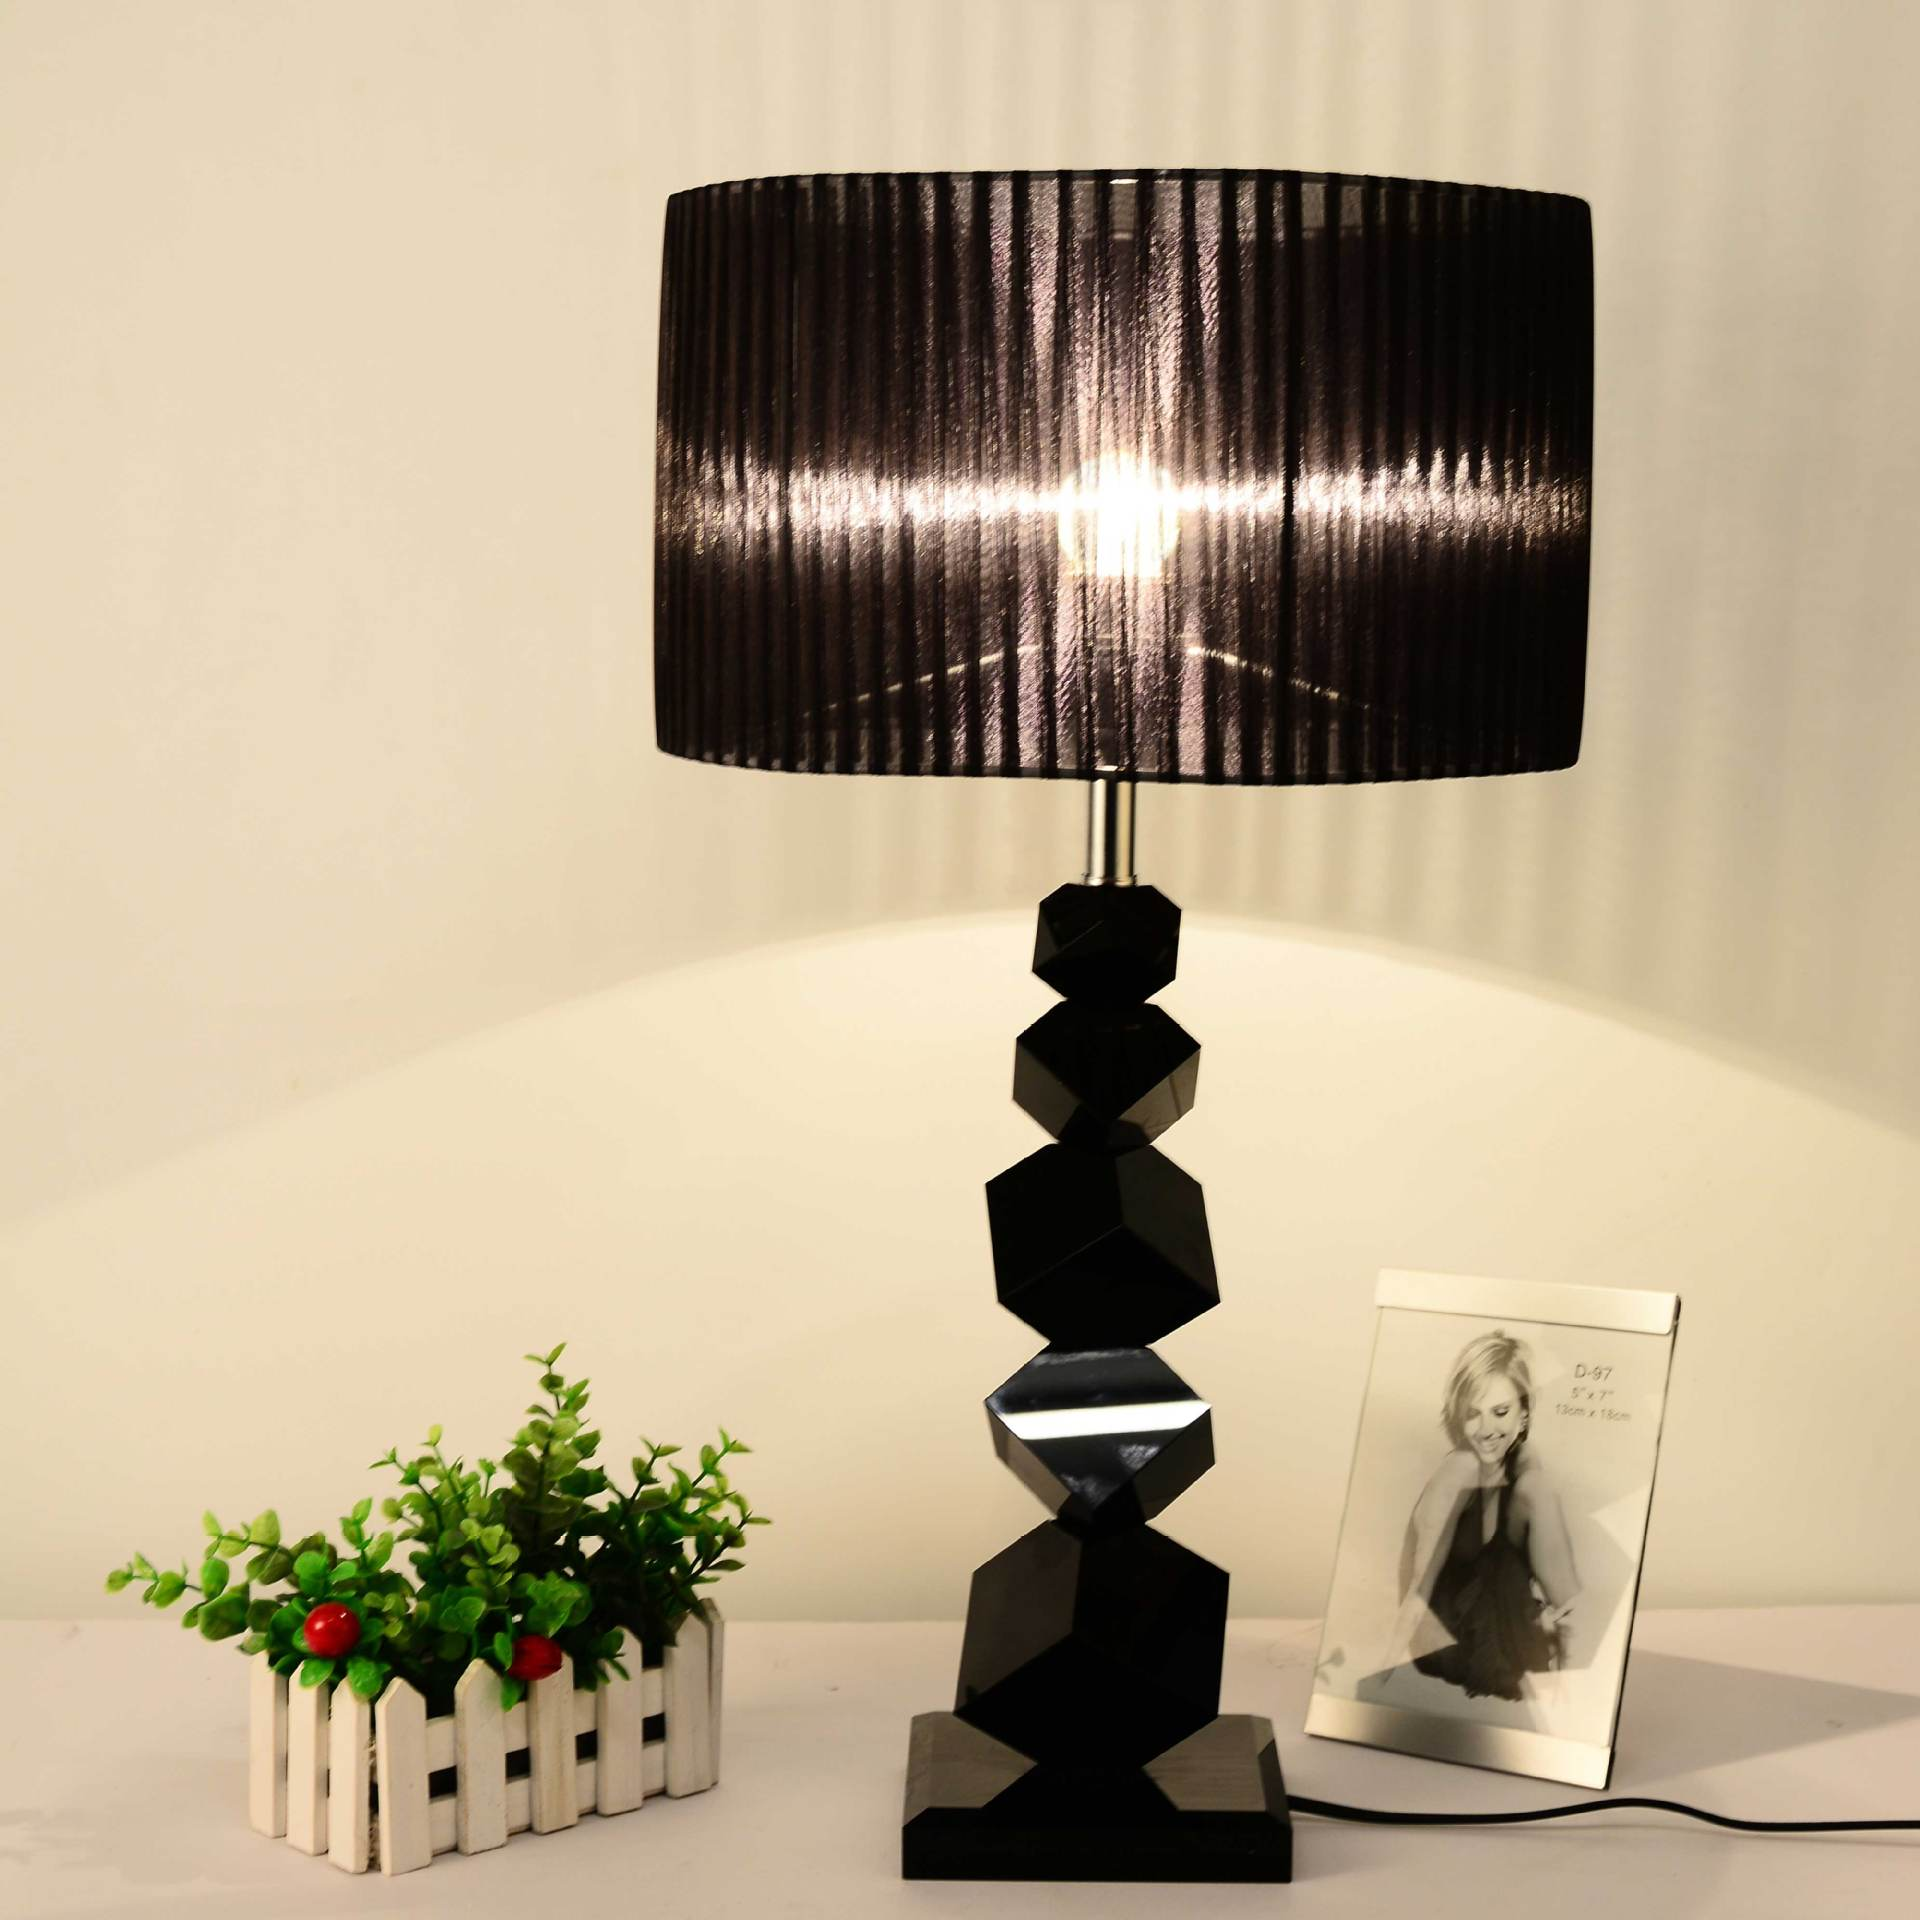 Black table lamp with crystals - 2017 Tuda Table Lamps Modern Crystal Lamp Black Crystal Table Lamp For Bedroom The Head Of